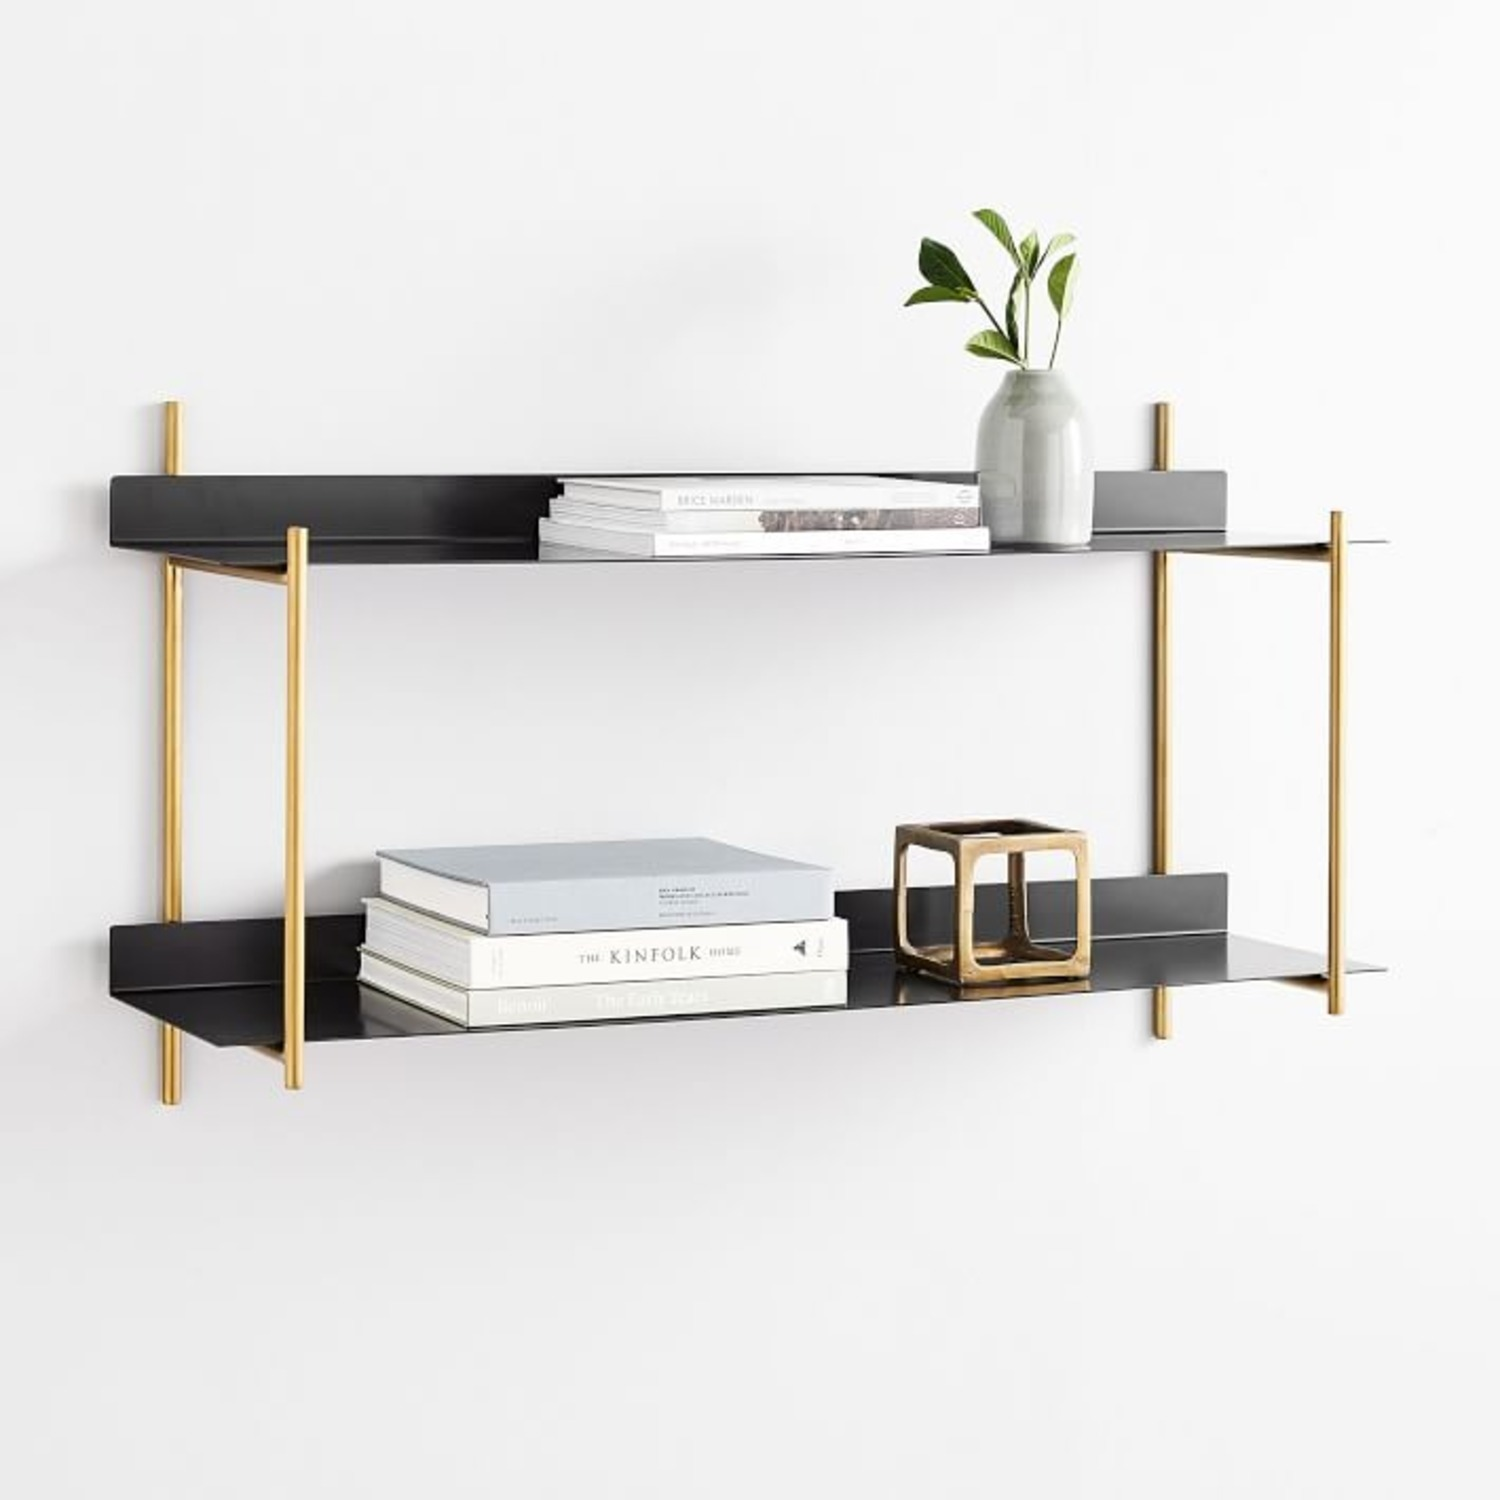 West Elm Floating Lines 2- Tiered Wall Shelf - image-1